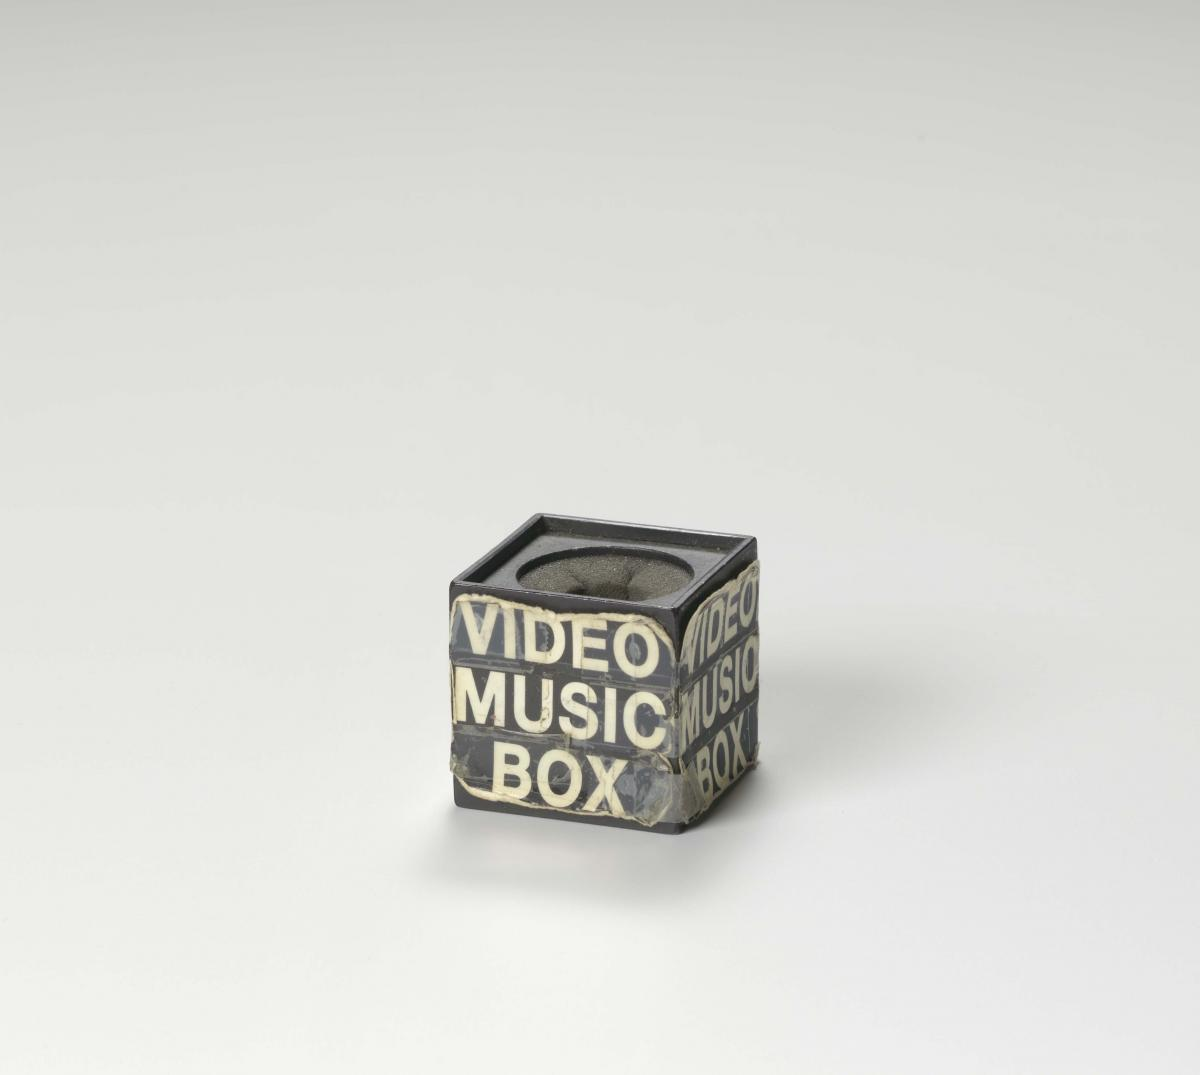 Microphone box used by Ralph McDaniels on the television show Video Music Box, ca. 1988, Collection of the Smithsonian National Museum of African American History and Culture, Gift of Ralph McDaniels, Founder of Video Music Box